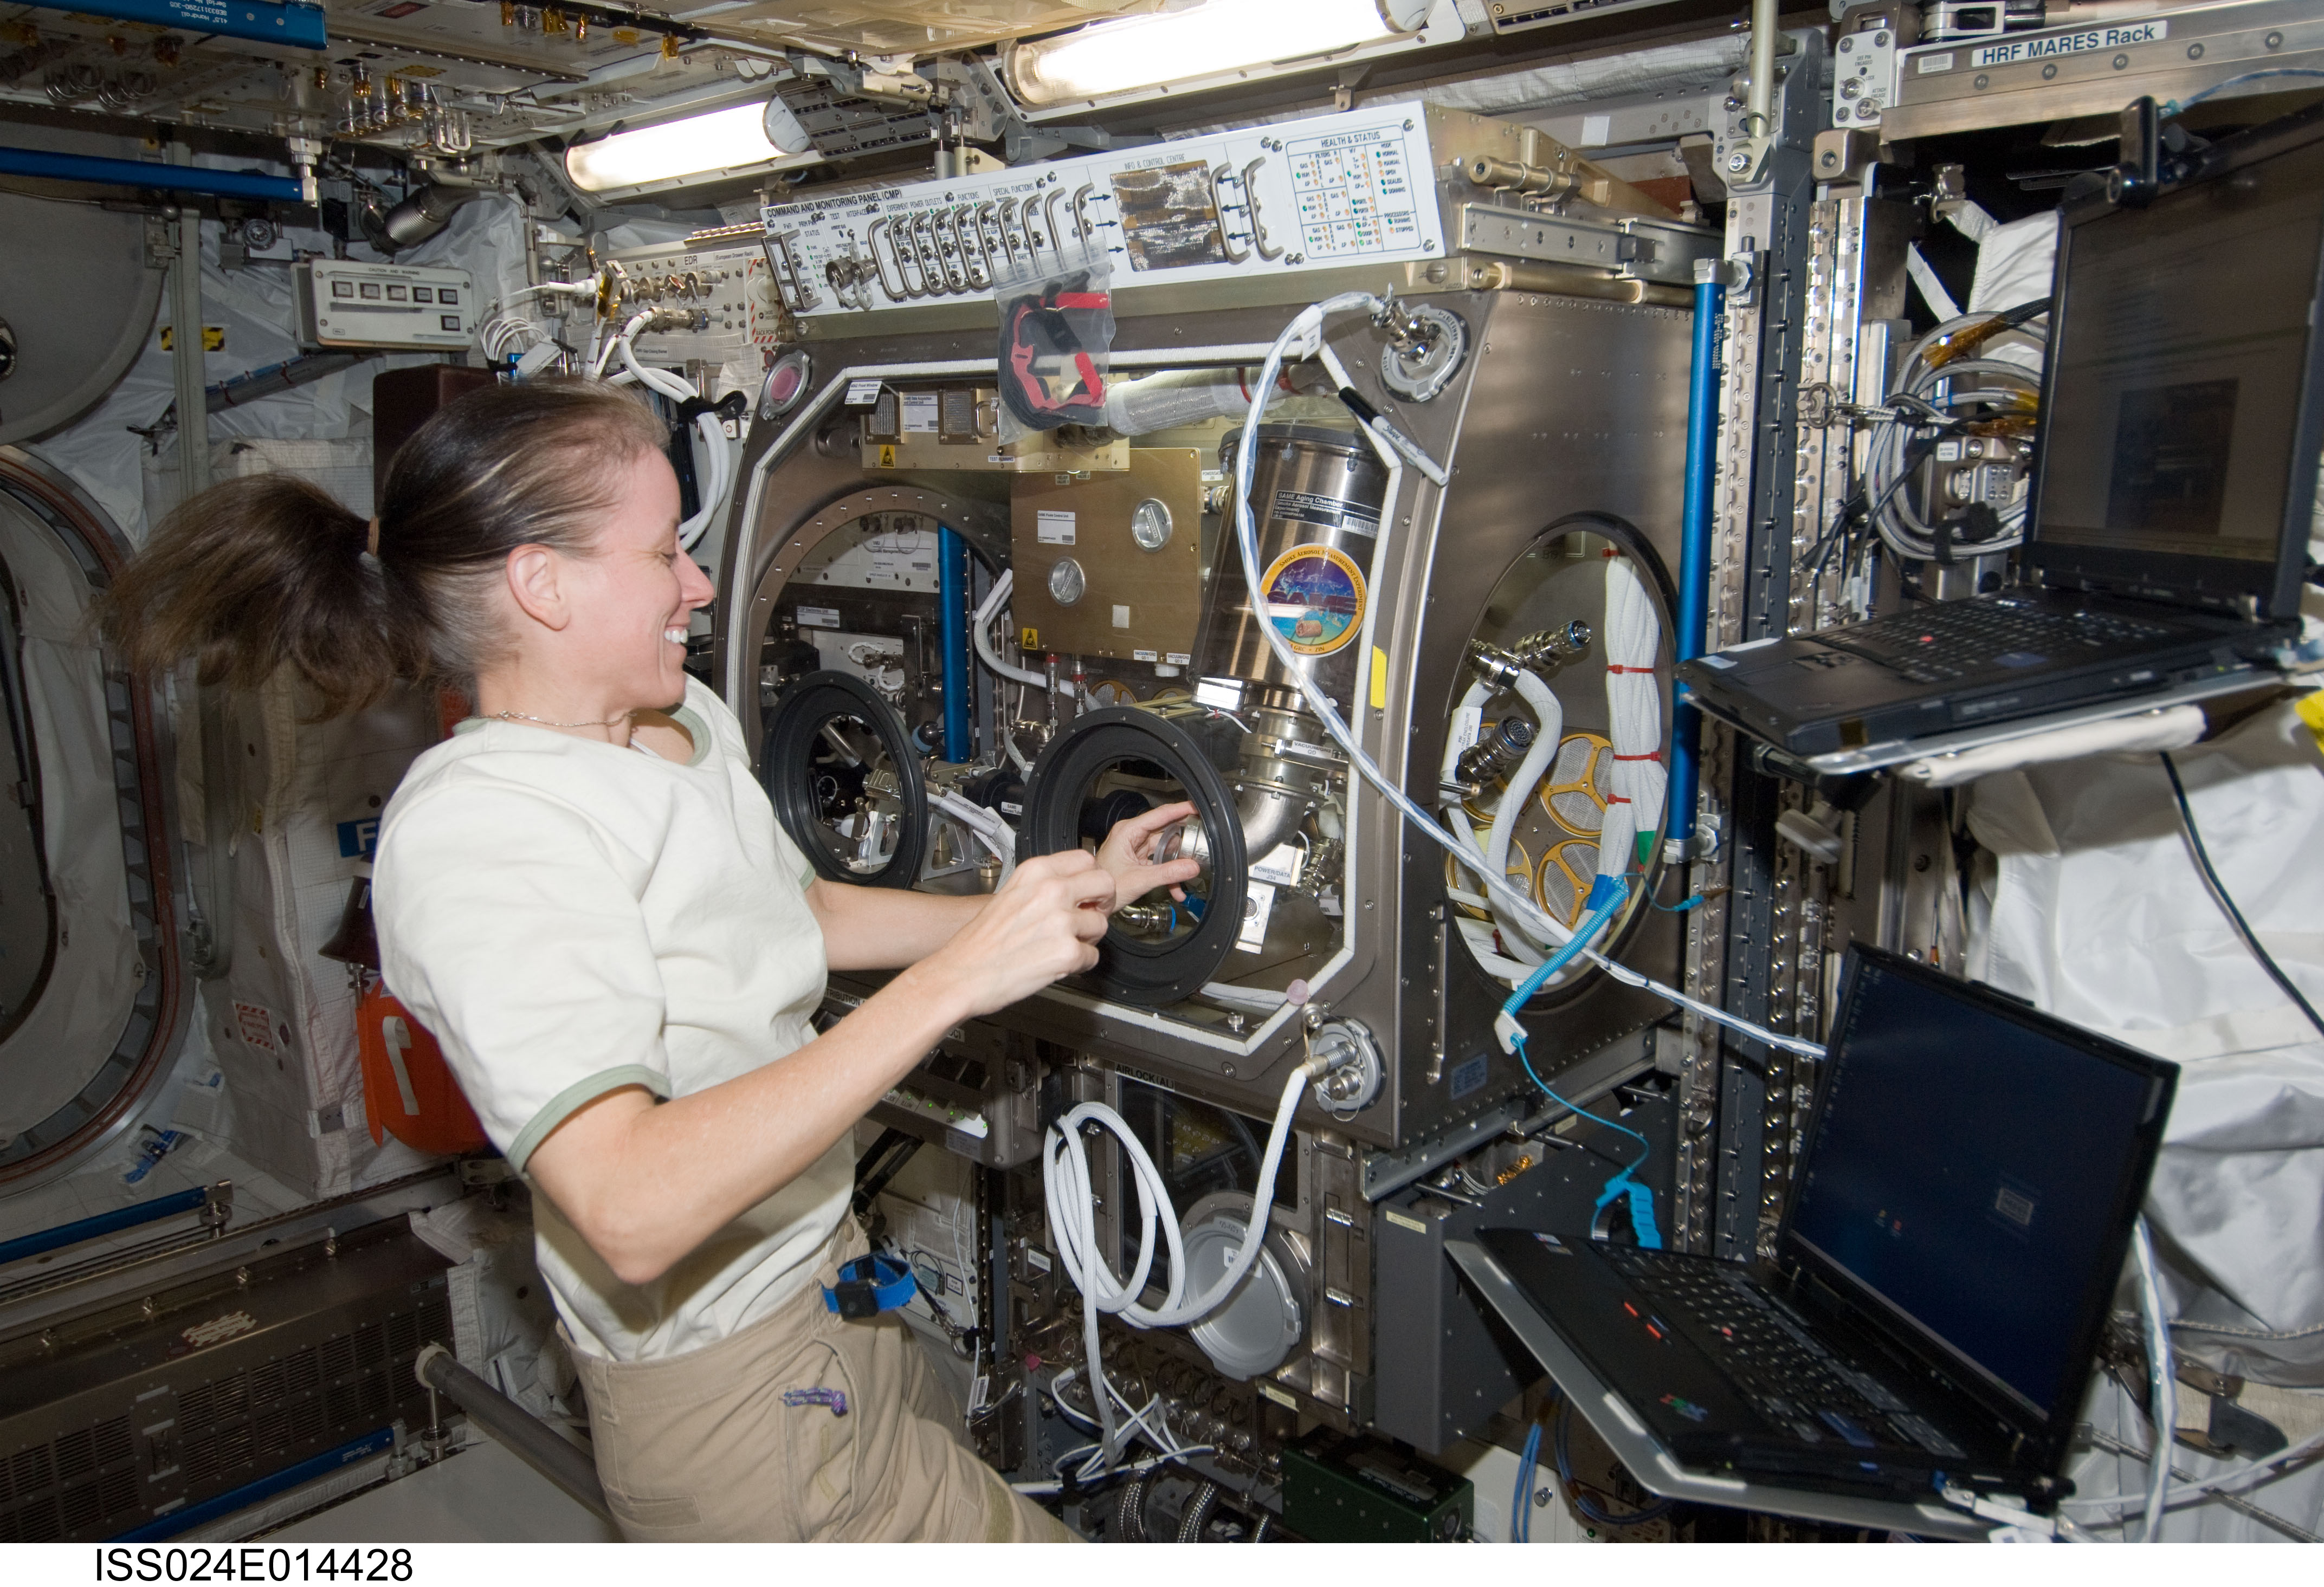 Inside International Space Station Nasa View high resolutionNasa Space Station Inside